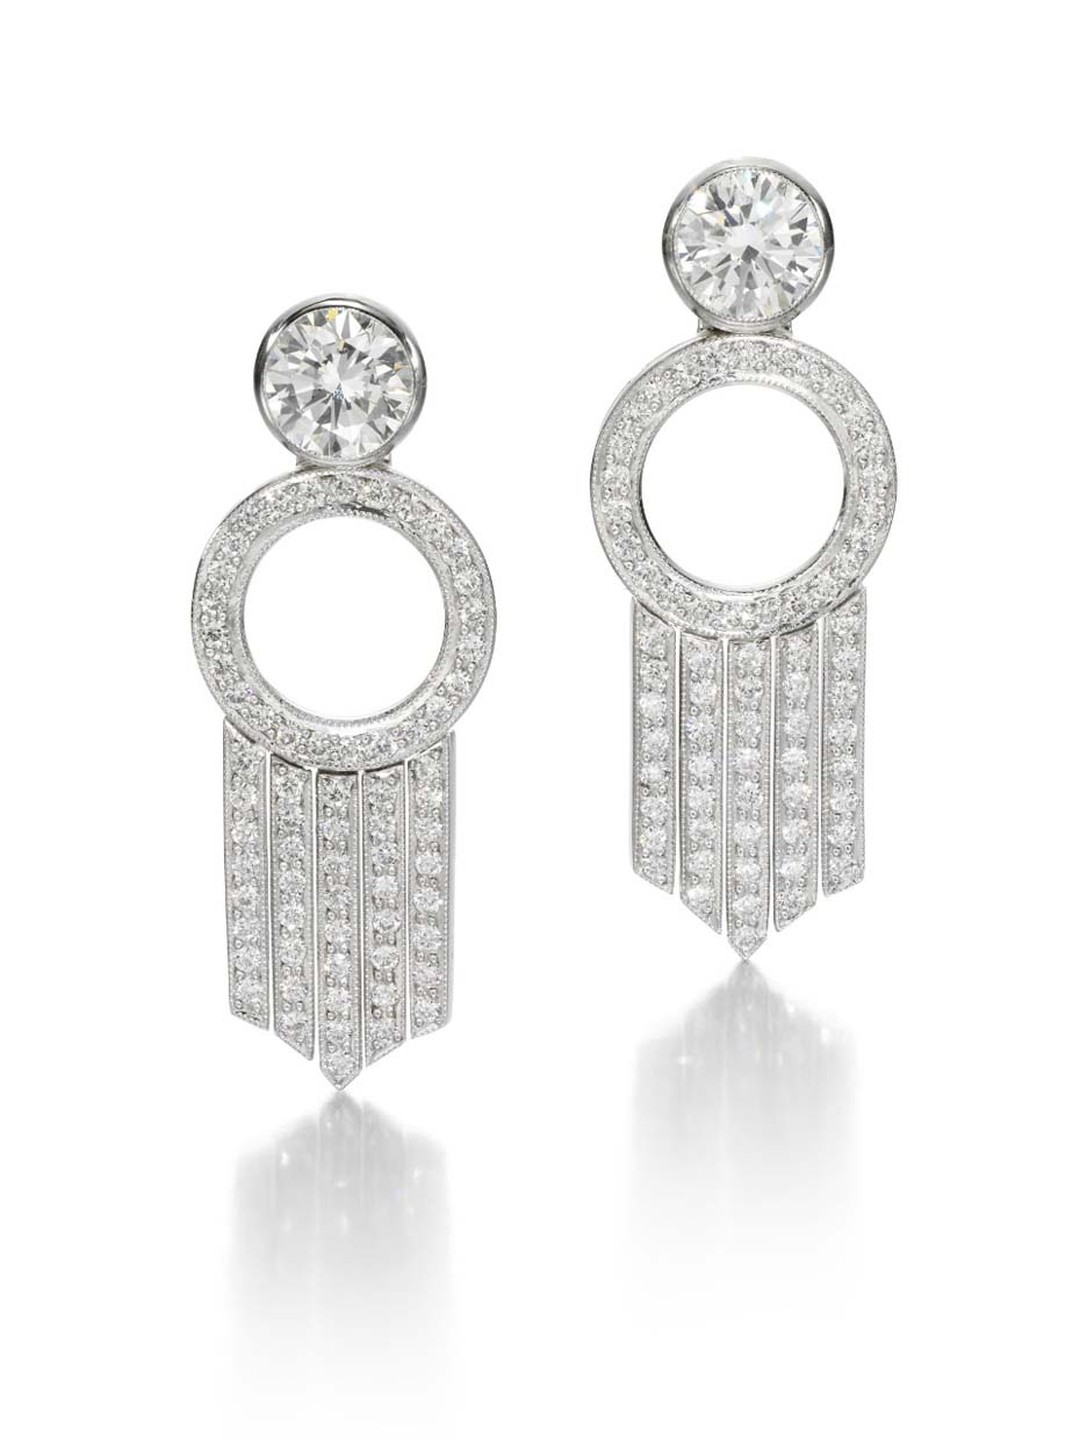 Jessica McCormack Bang earrings in white gold, with diamond loops and diamond-set fringing. The 2.03ct round brilliant-cut diamonds are detachable